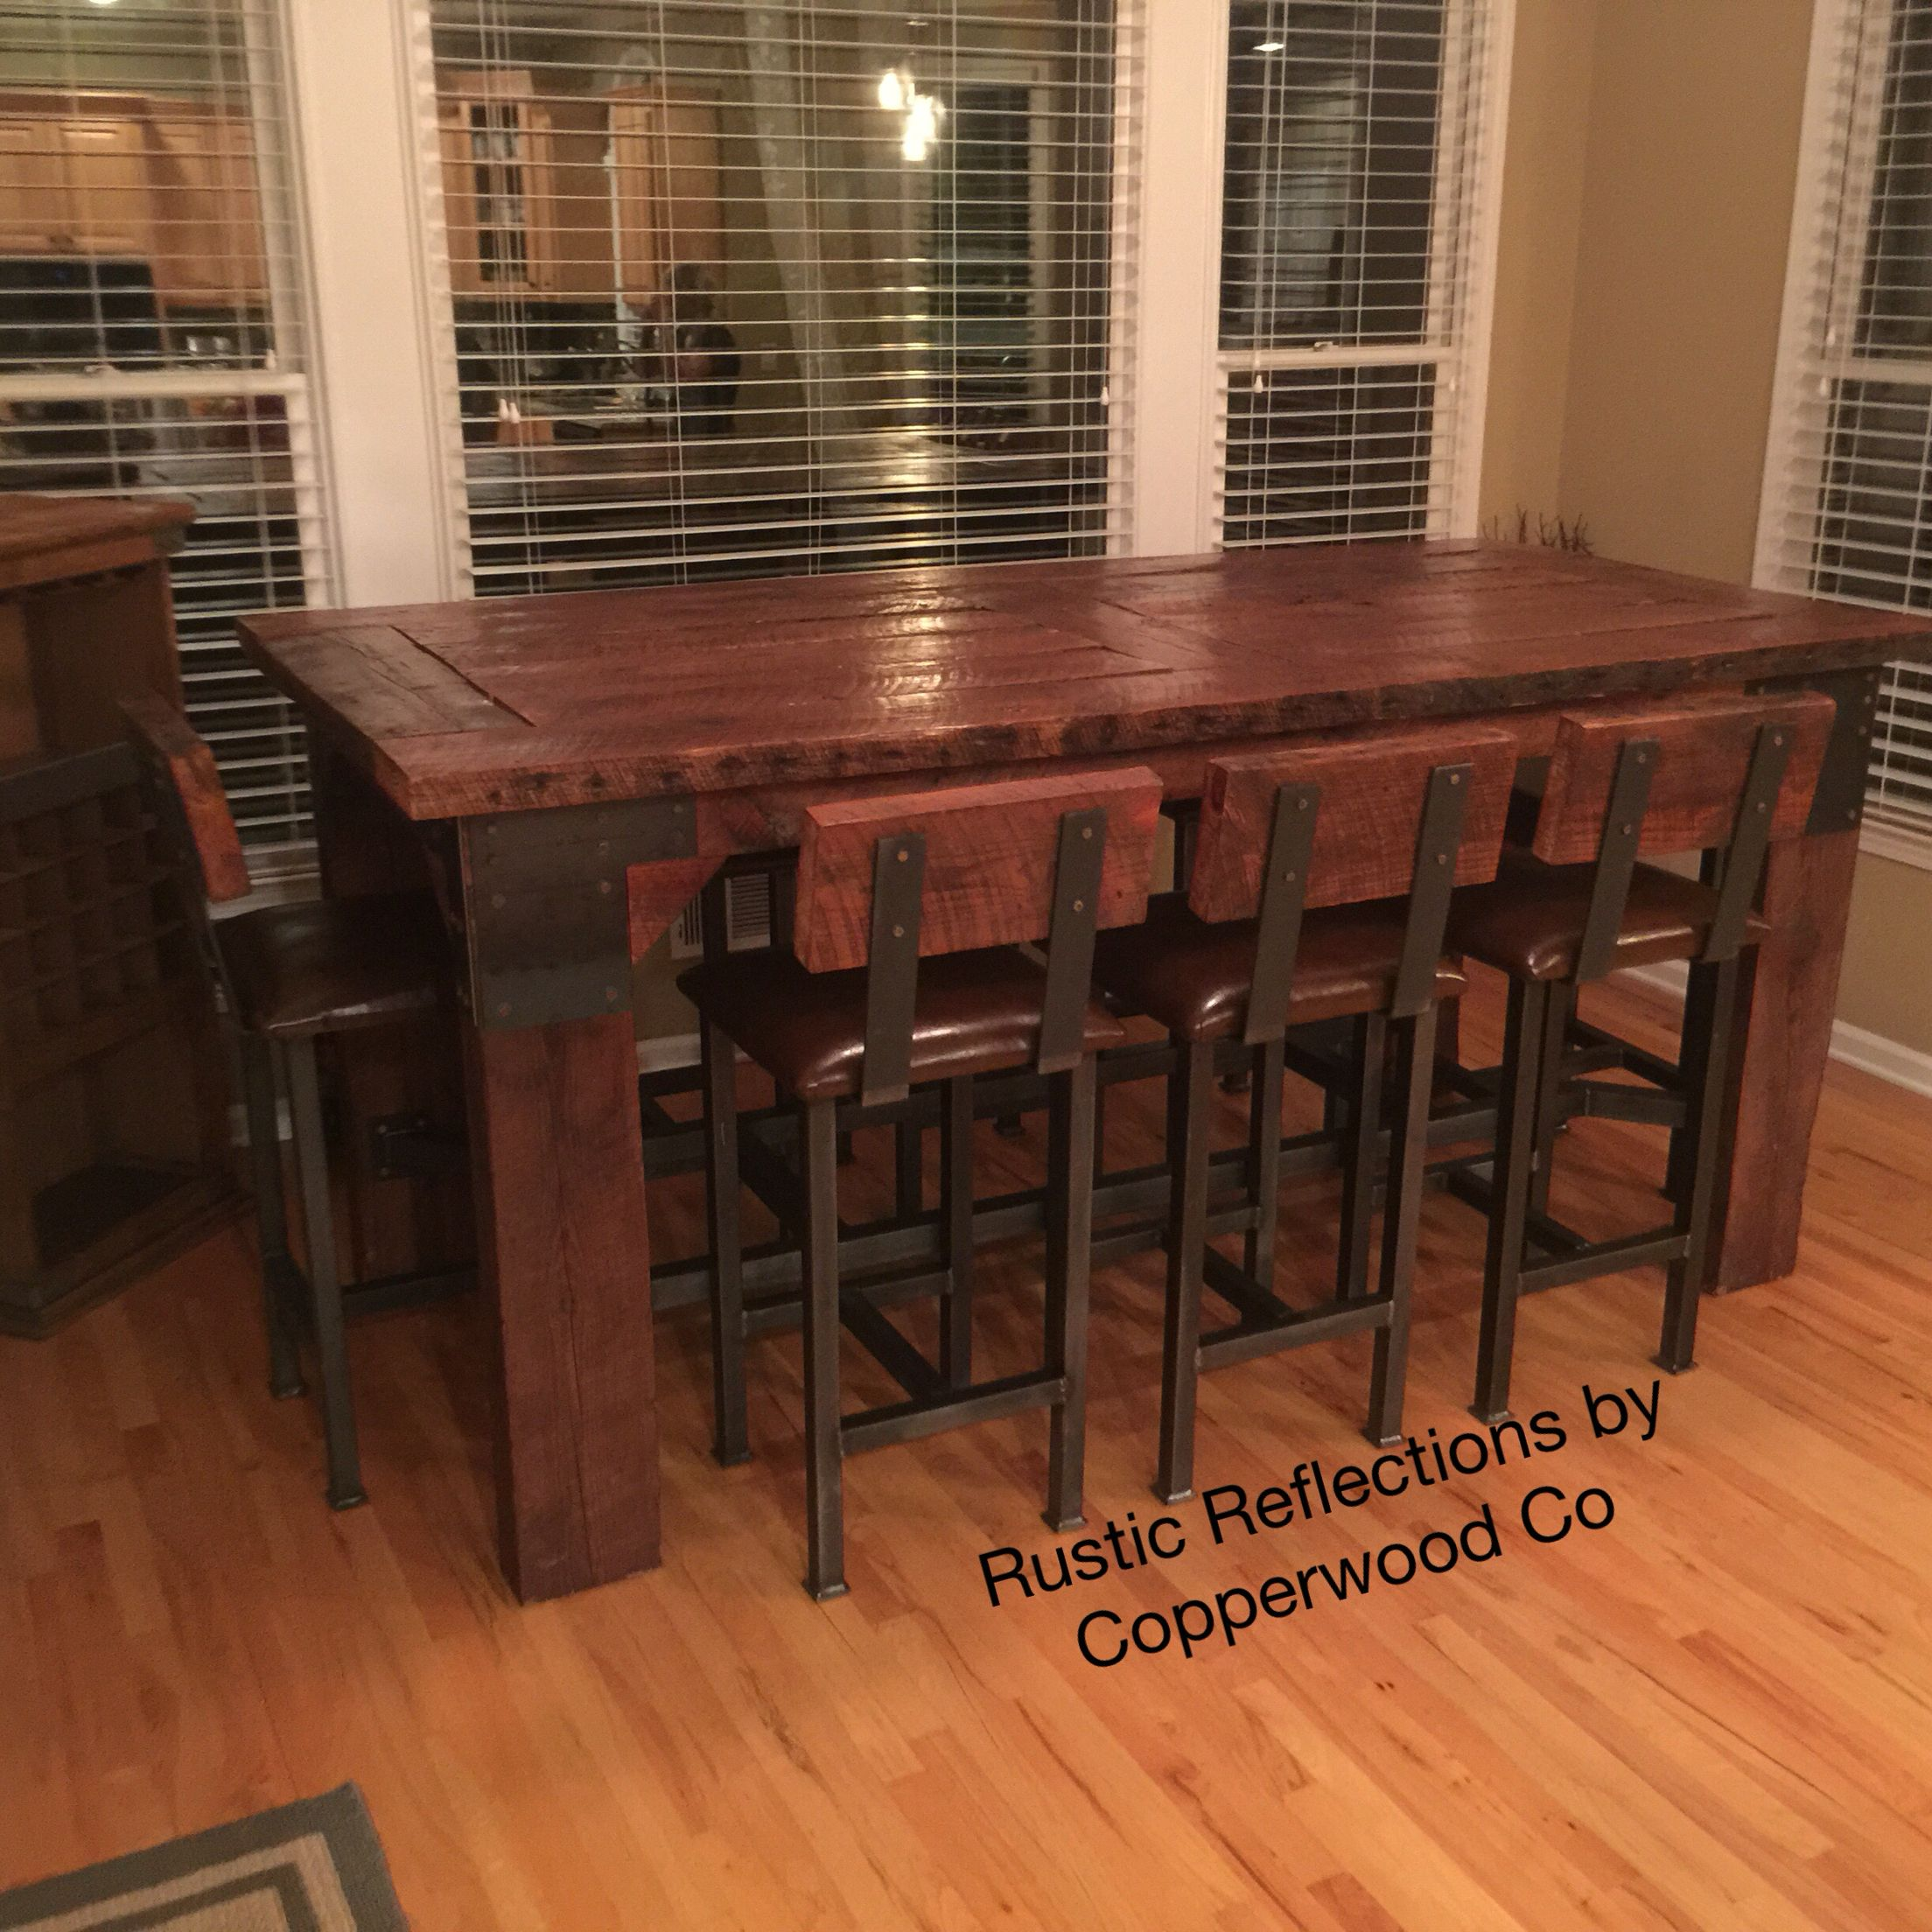 Charmant Custom Built Pub Table And Bar Stools. Wood Was Reclaimed Out Of A Locale  Mill In Rome, Ga. This Massive Table Stands 4 Foot Tall, 4 Foot Wide And 8  Foot ...